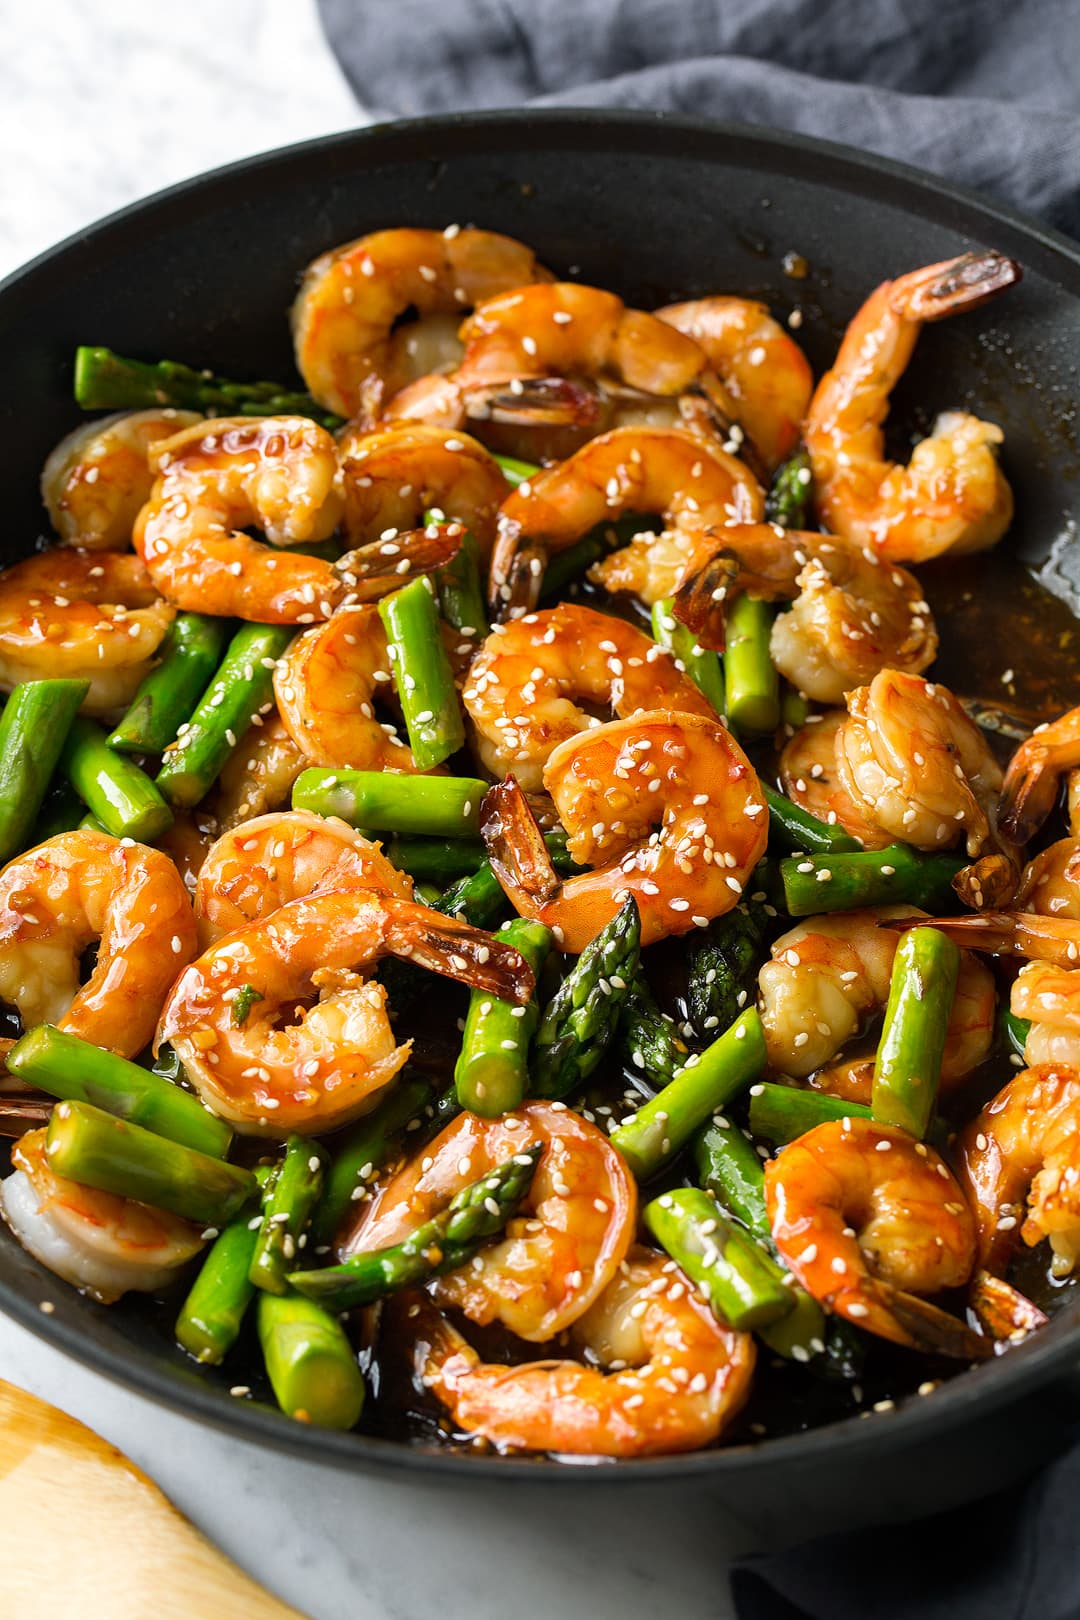 Teriyaki Shrimp and Asparagus stir fry in a large skillet